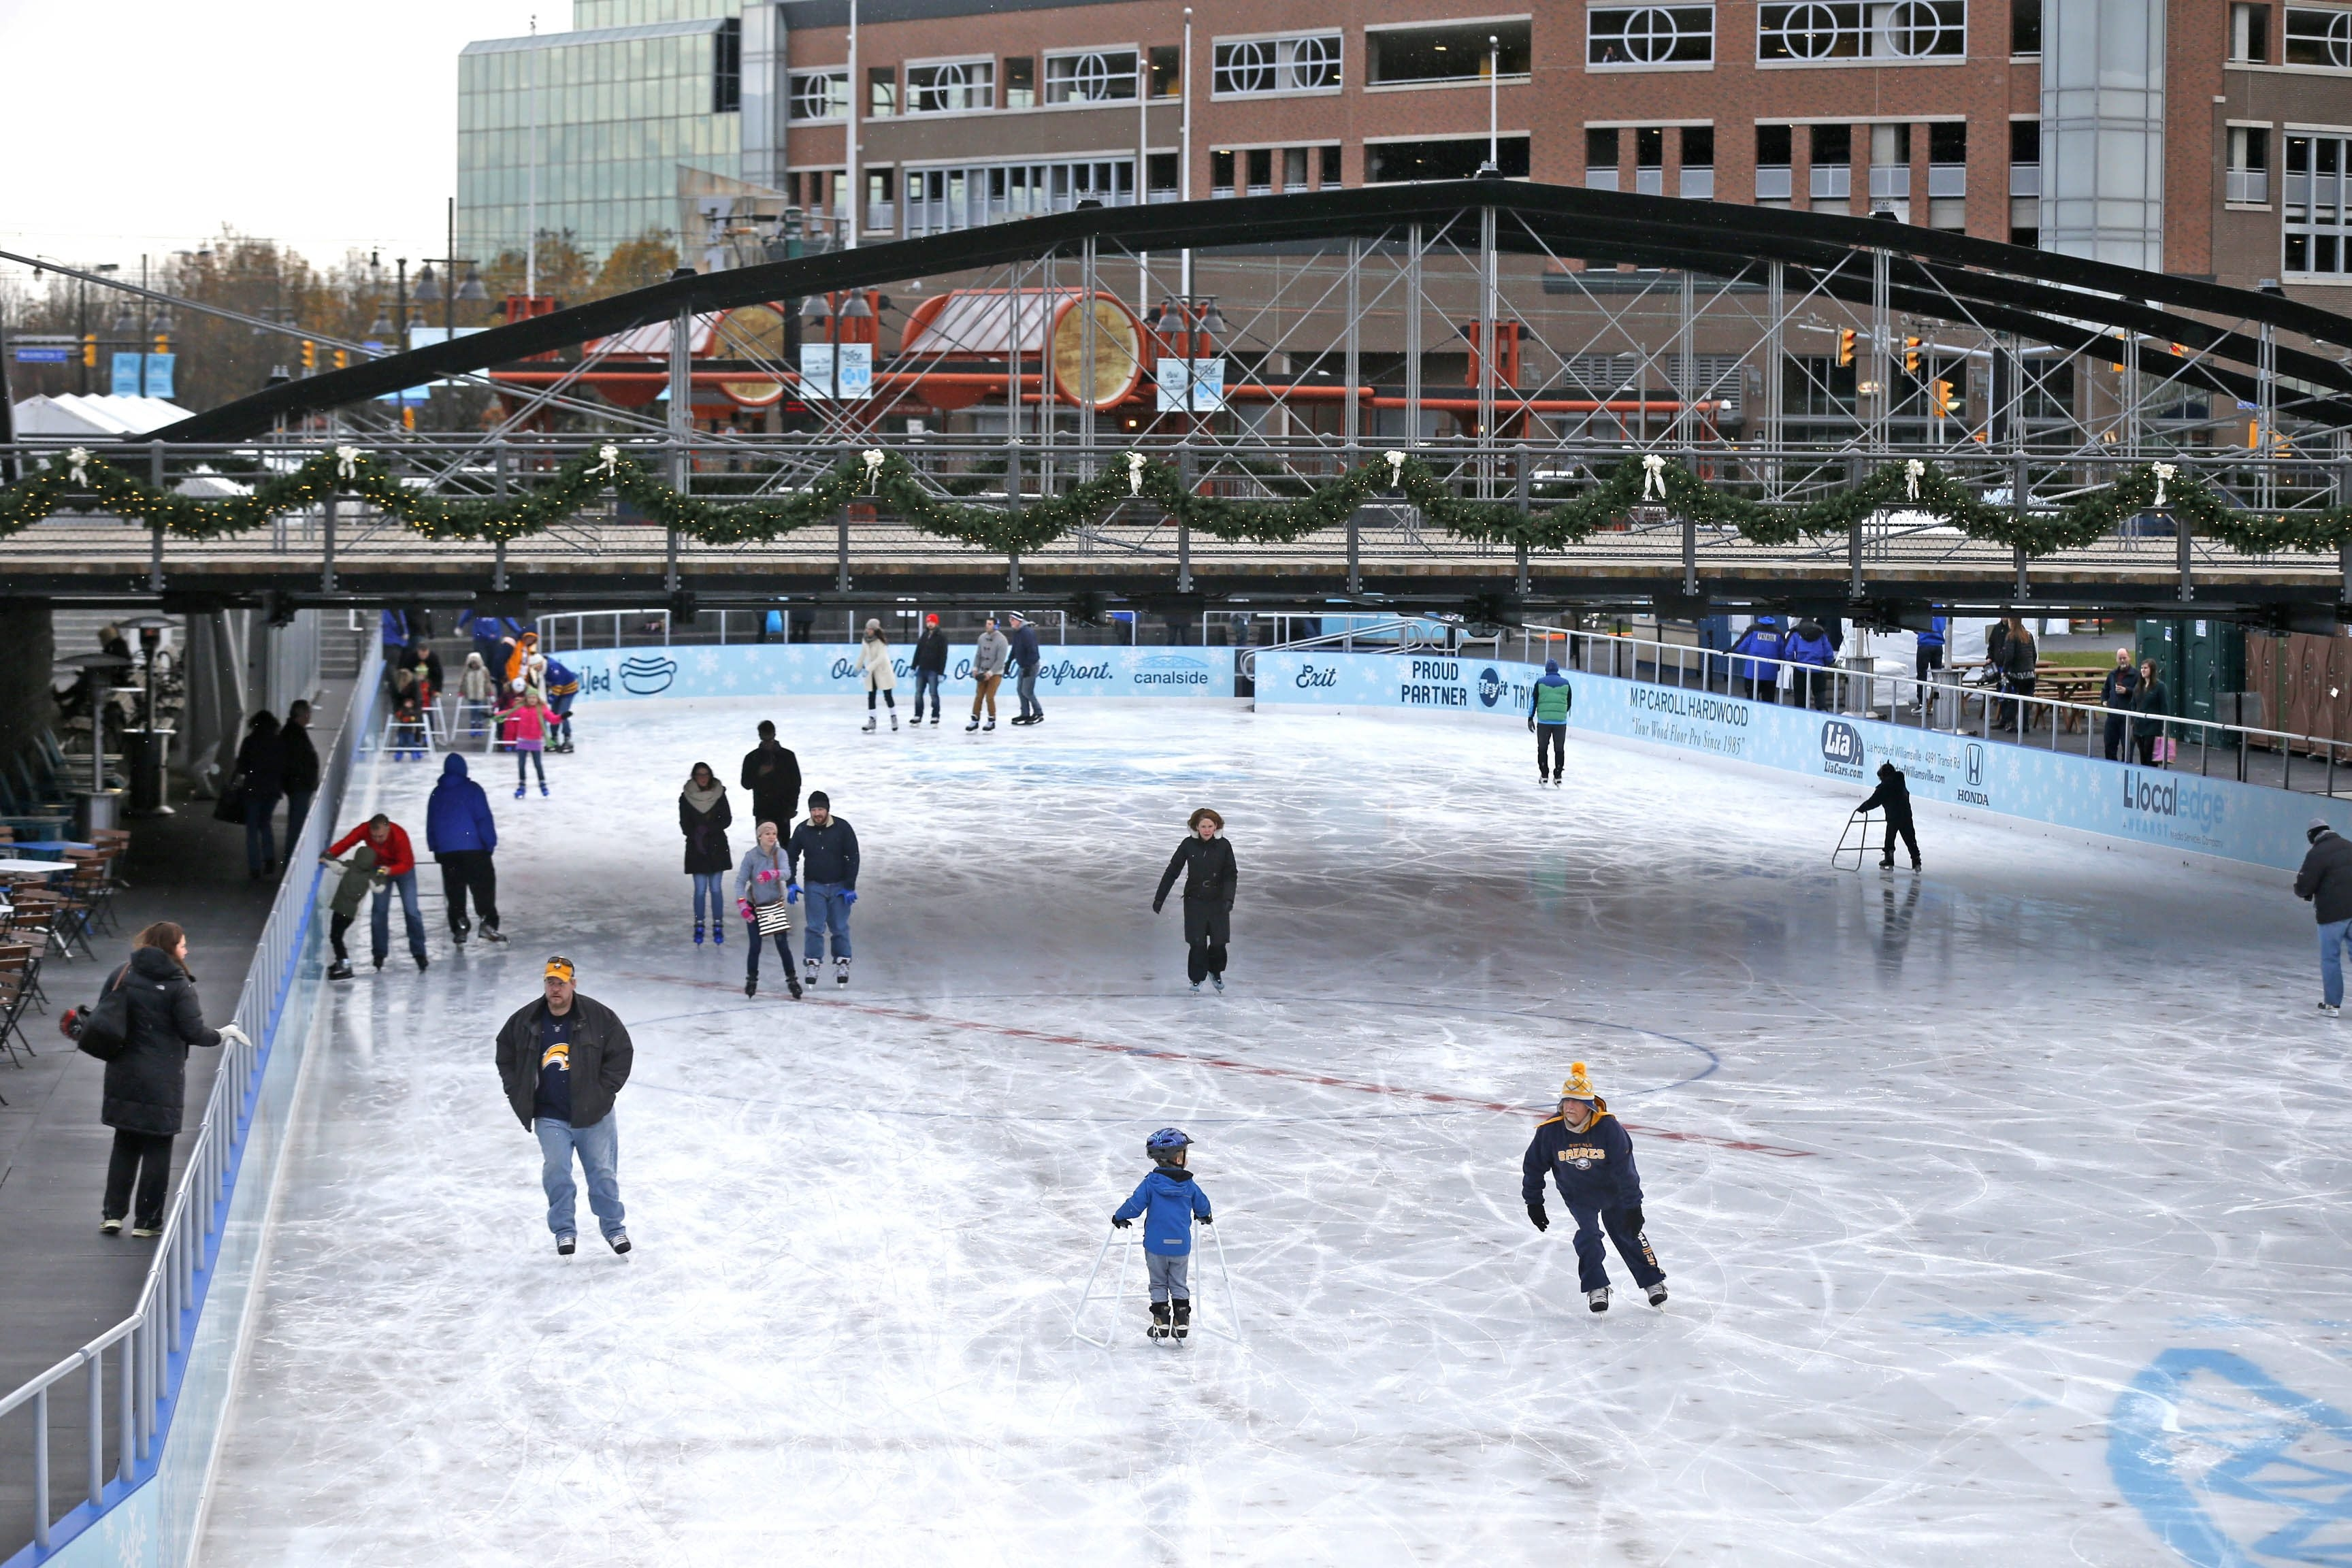 Ice skating at CanalSide is free to the first 200 people on the first Friday of each month.